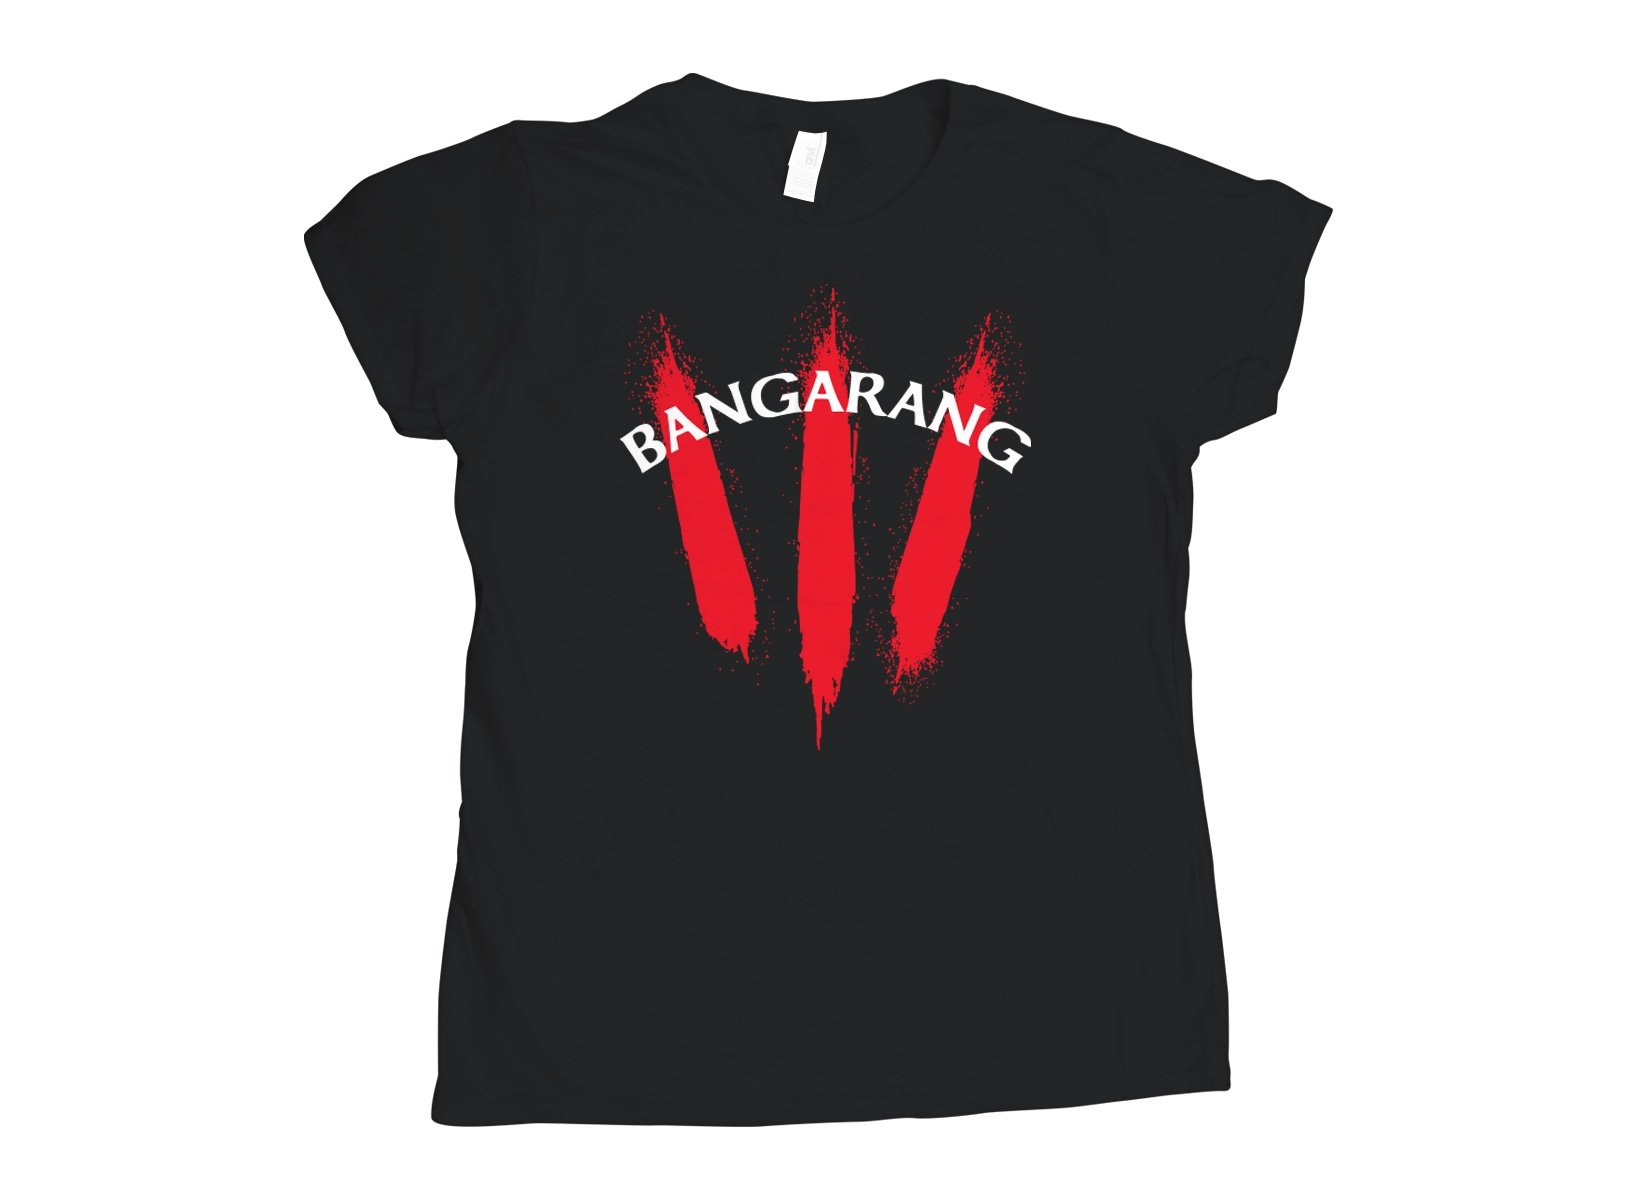 Bangarang on Womens T-Shirt